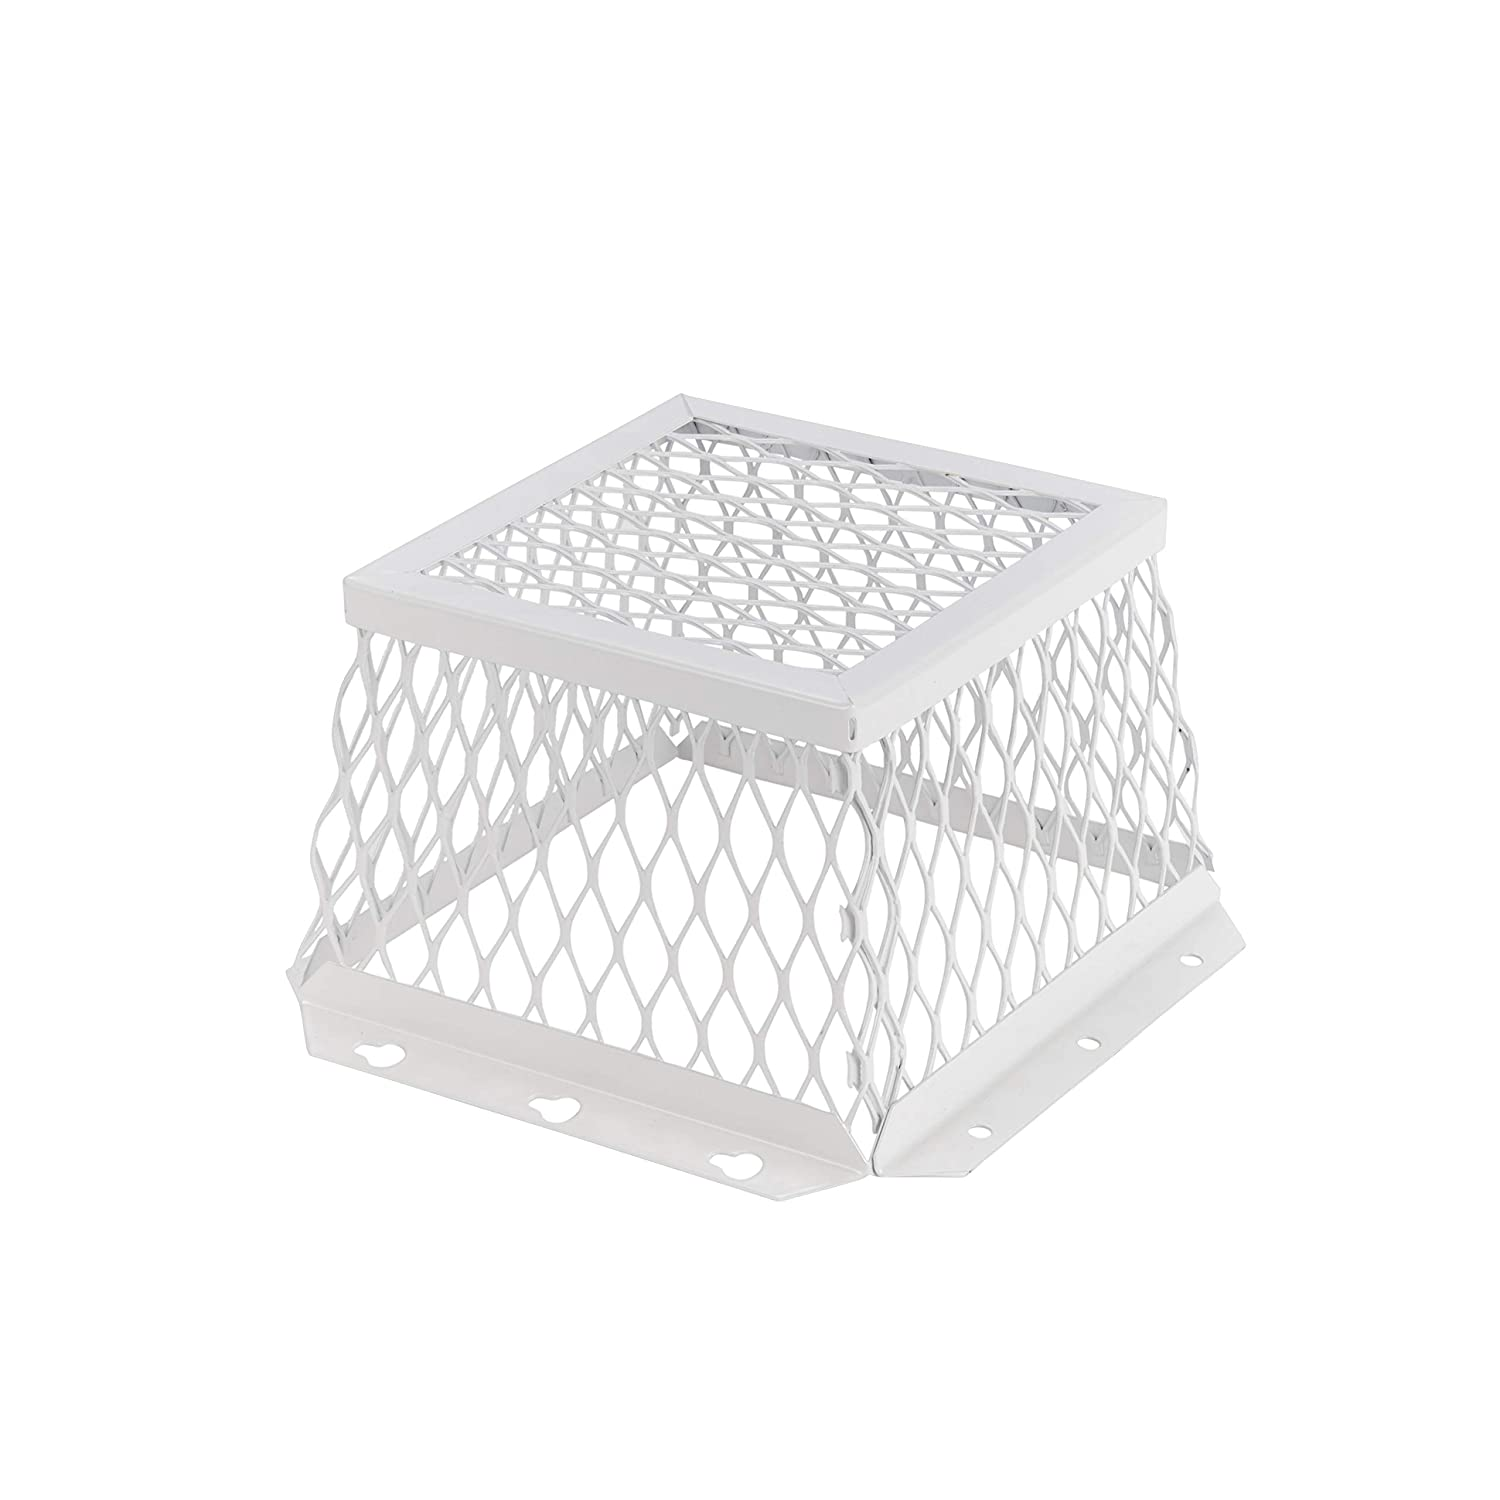 """HY-C RVG-DVG Stainless Steel Universal VentGuard, 100% 304 Stainless Steel Mesh, Easy Installation, 7"""" L x 7"""" W x 5"""" H, White Powder Coat Finish"""